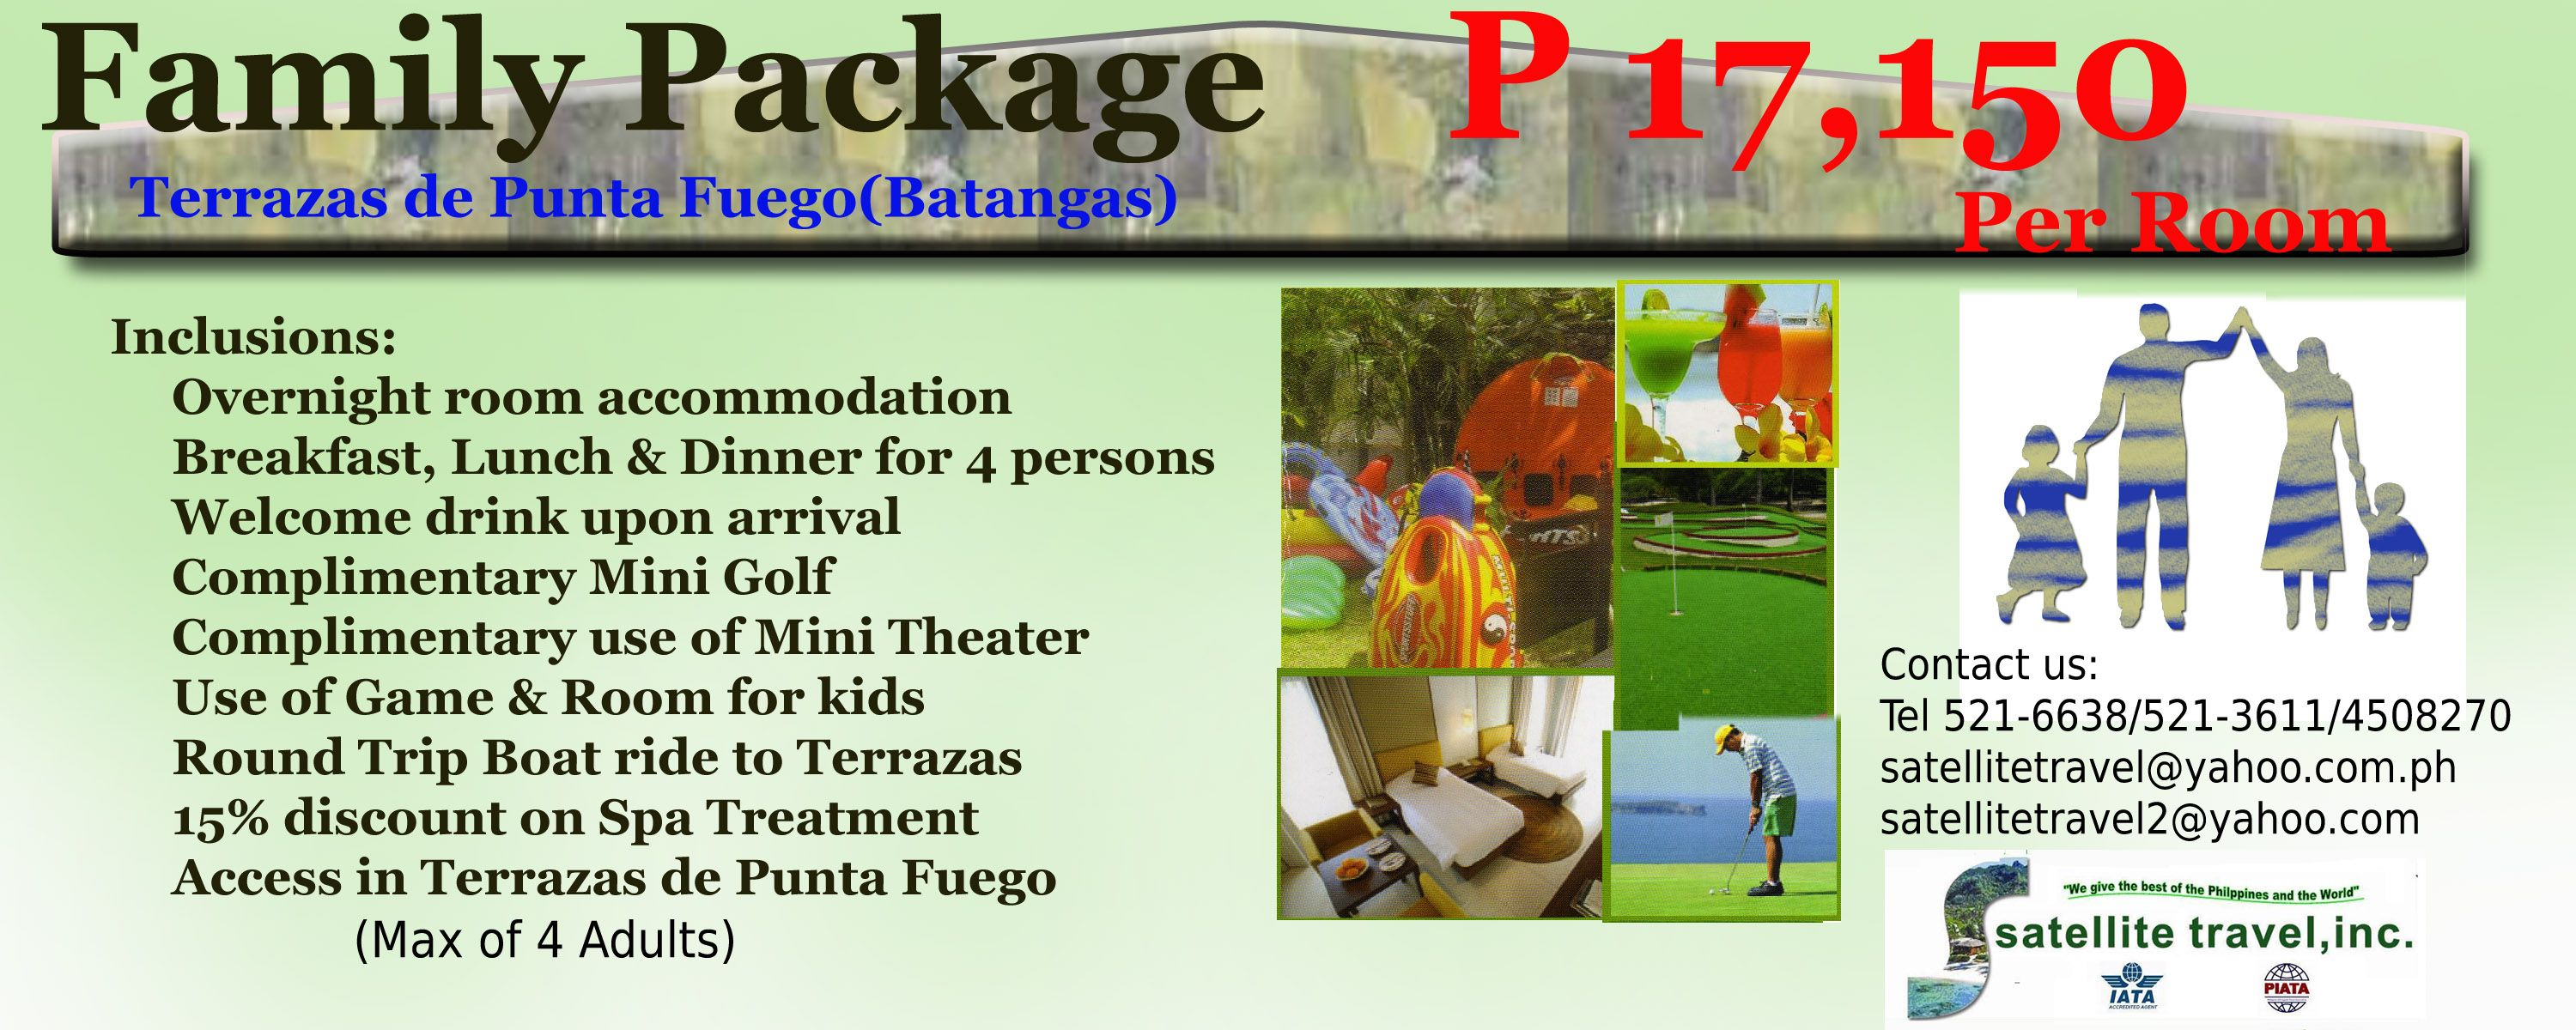 Family Package Terrazas Punta Fuego Batangas Family Package Packaging Welcome Drink